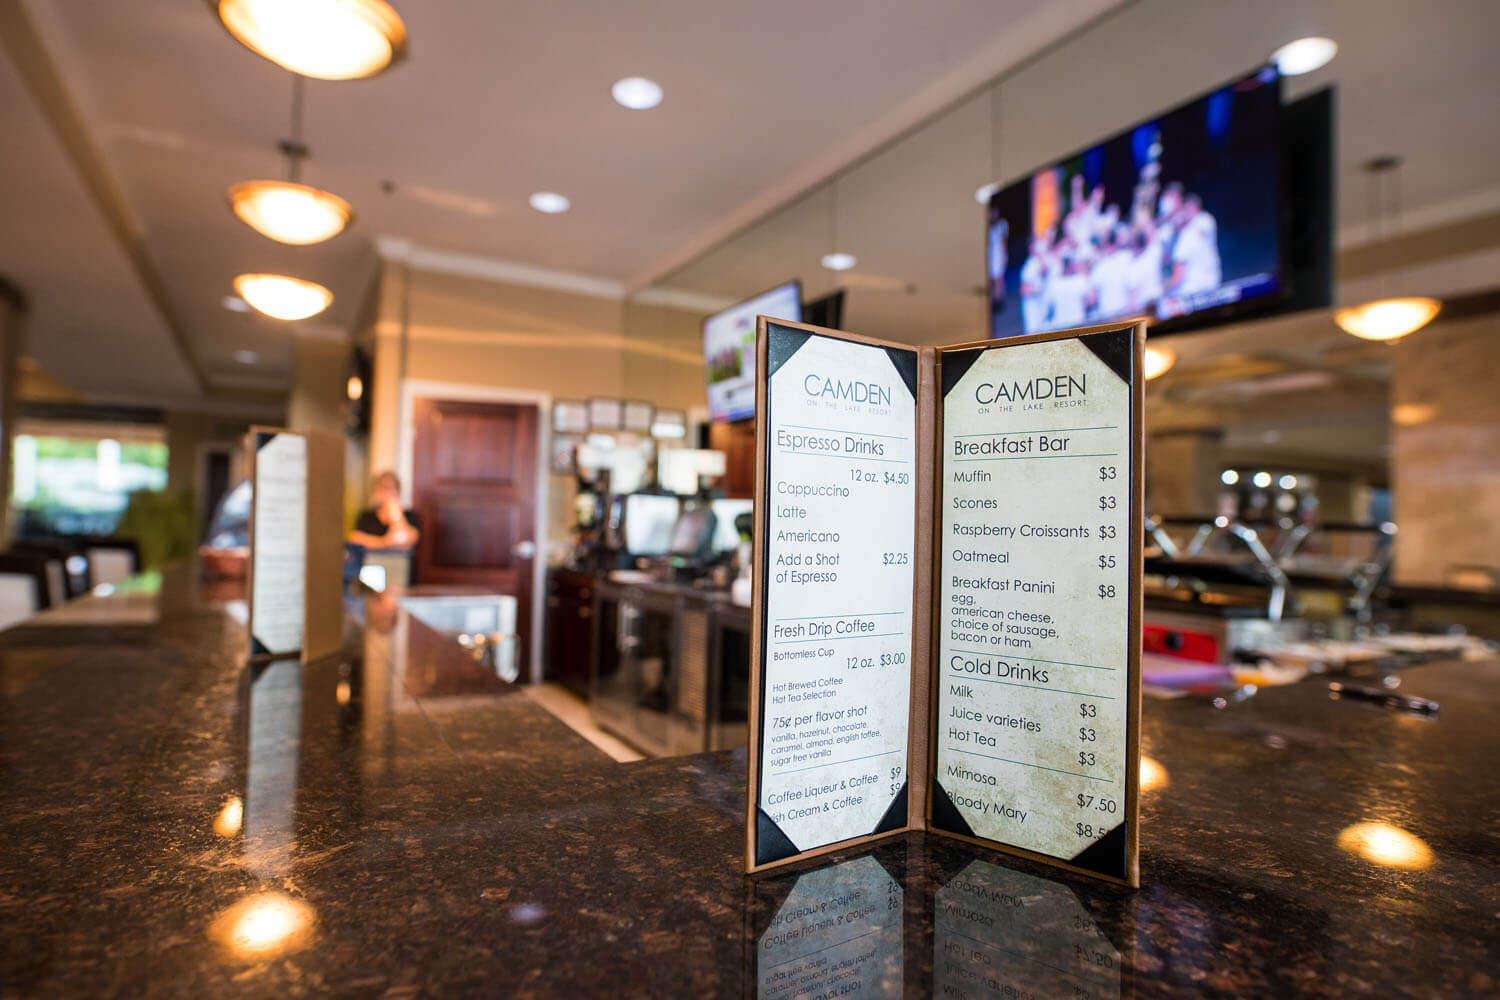 Coffee and Breakfast Bar menu at Cafe - Camden on the Lake Resort - Lake of the Ozarks